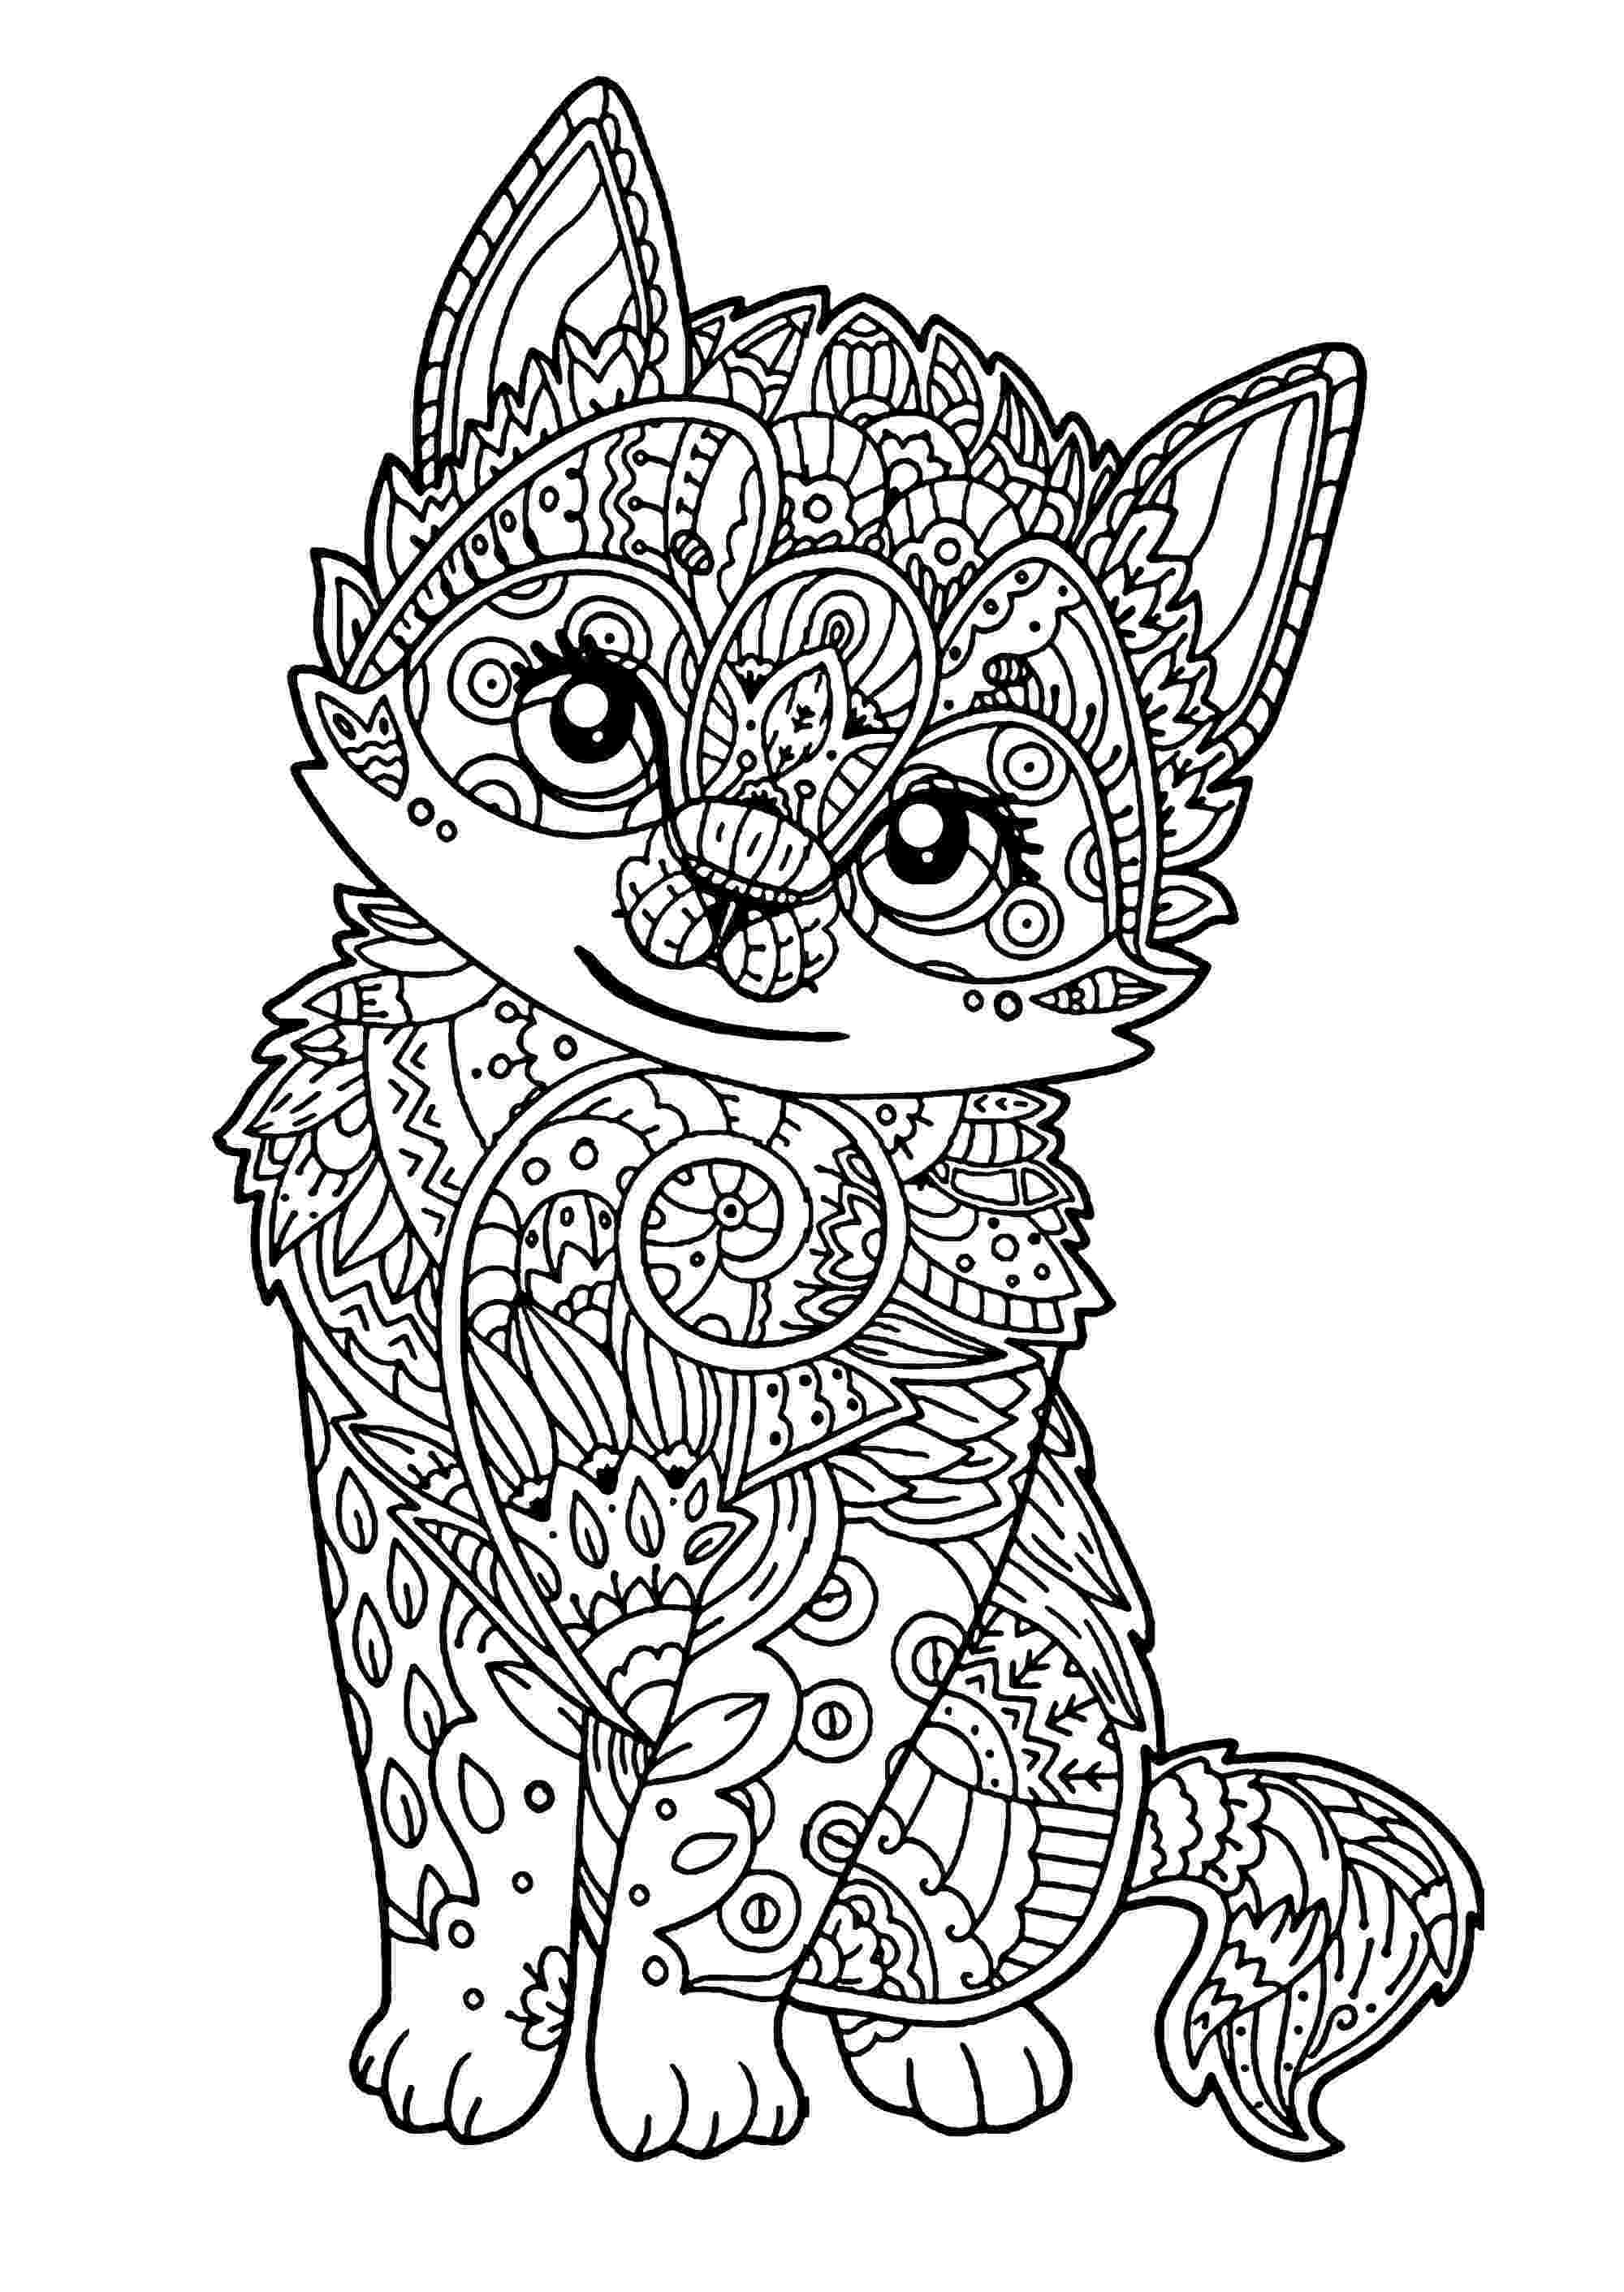 free online coloring pages for adults cats cat for kids little kitten cats kids coloring pages free online pages coloring for adults cats